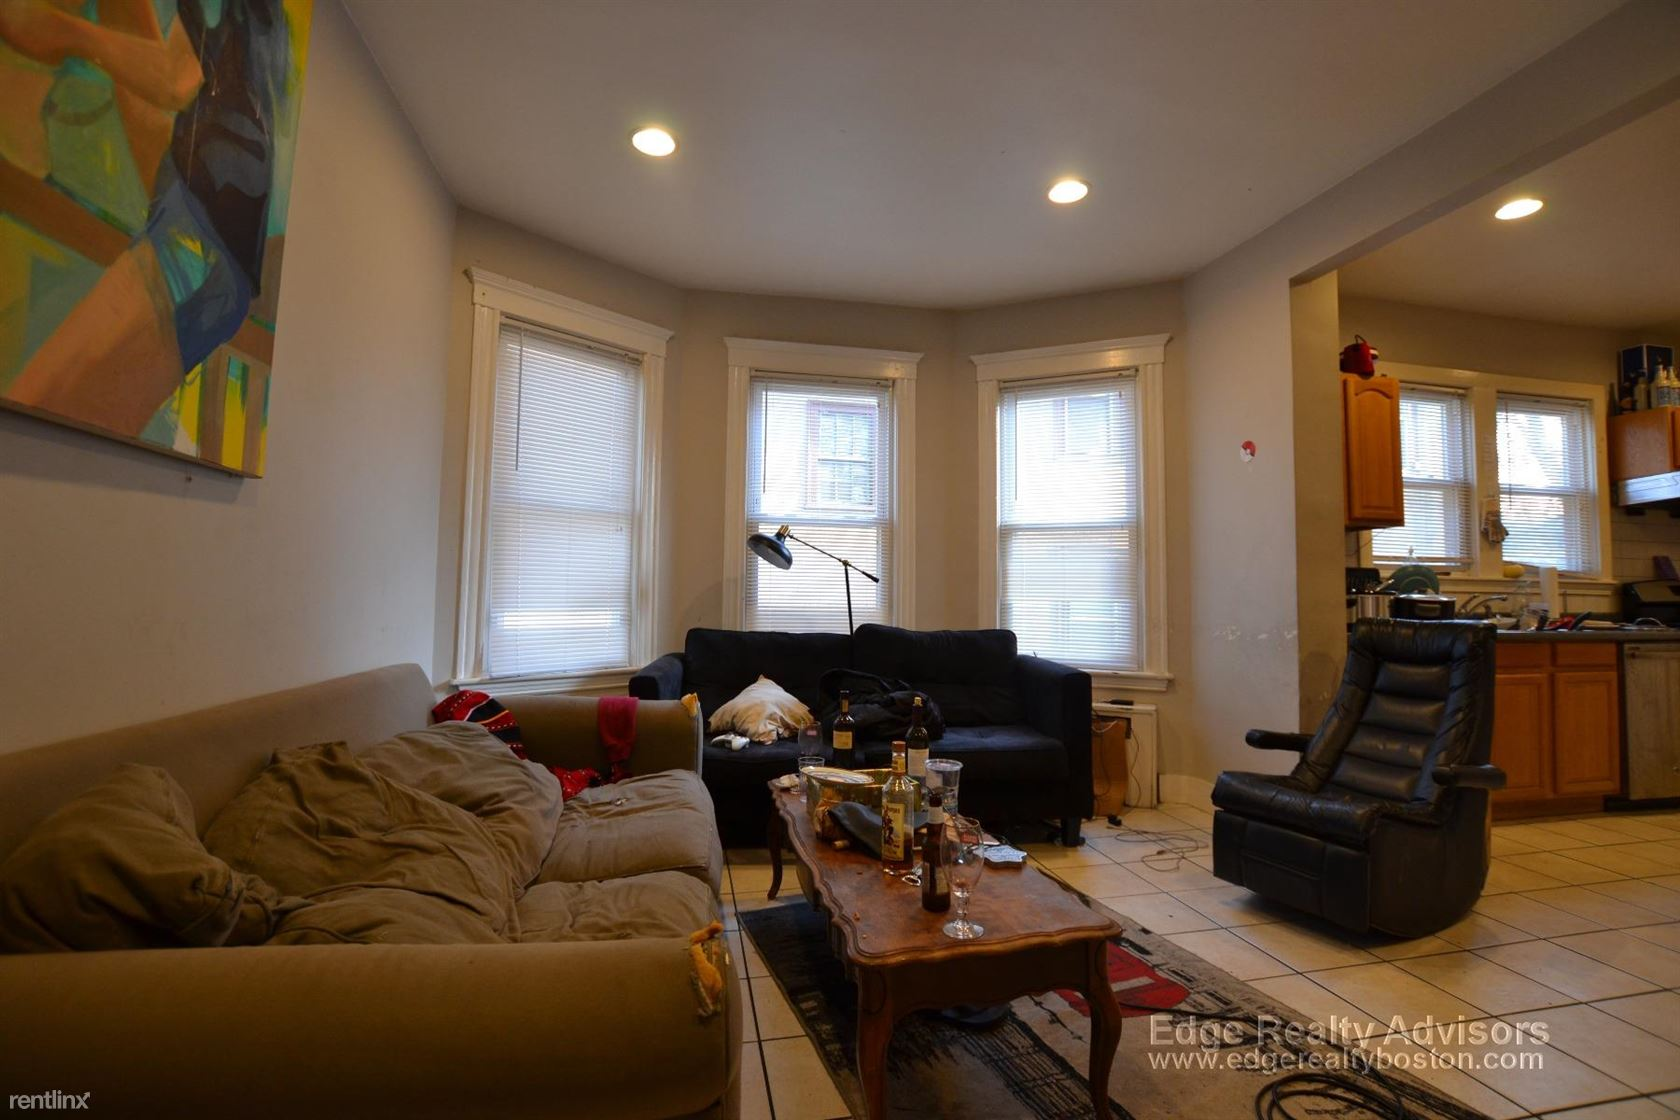 42 Long Ave, Allston, MA - $5,500